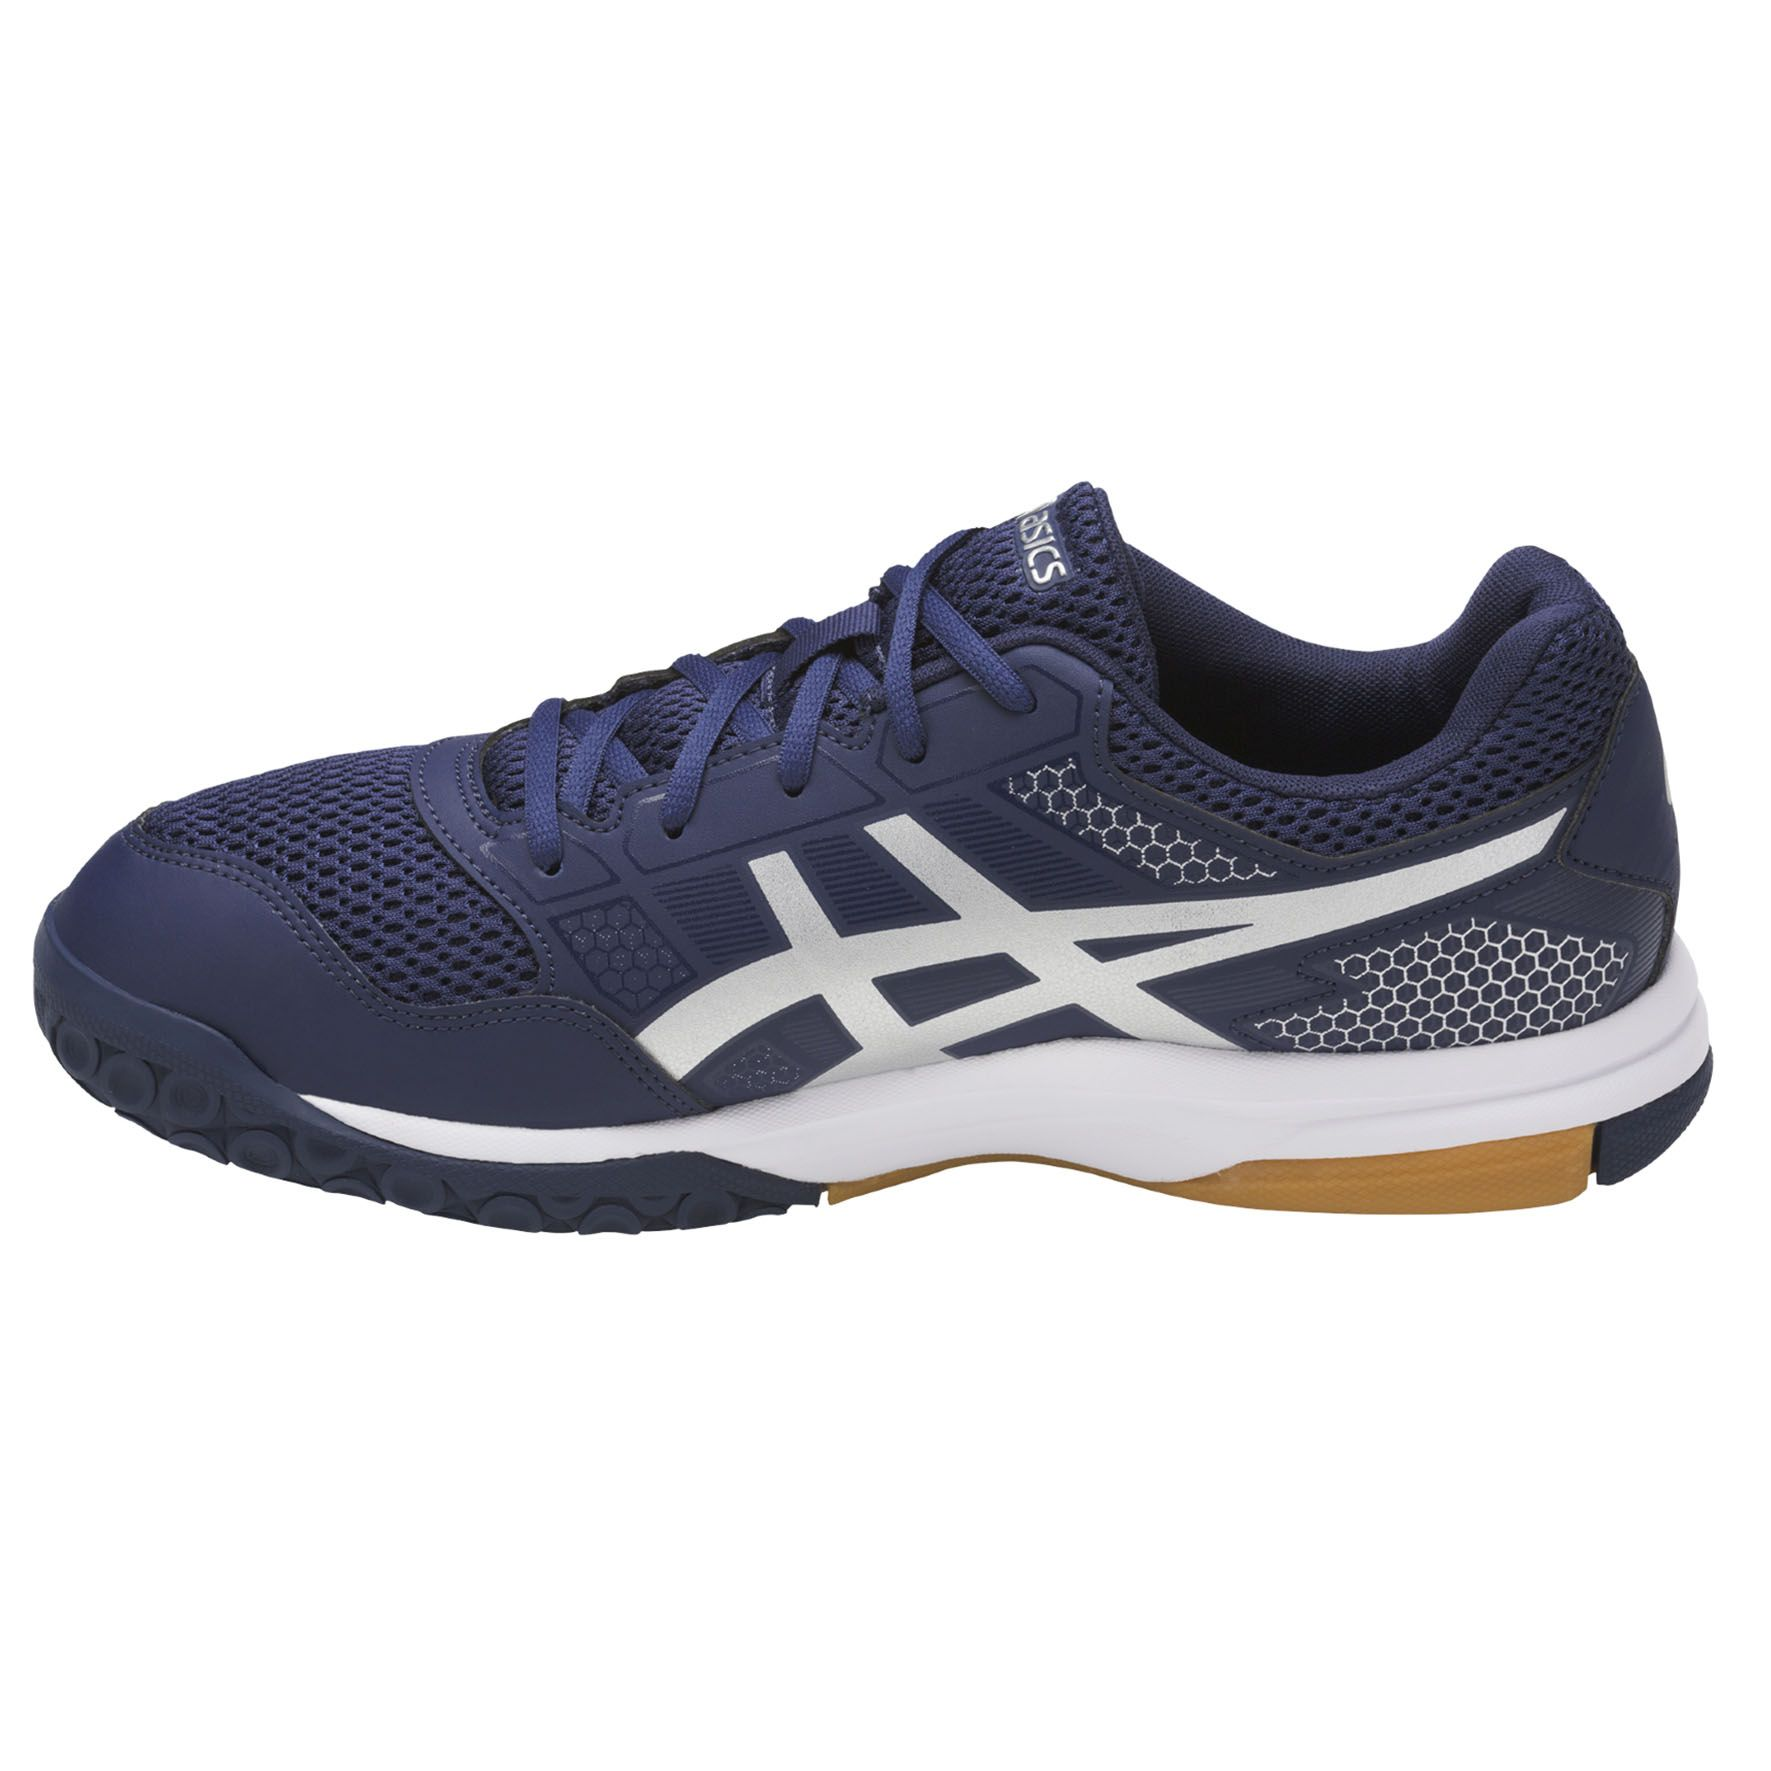 Asics Squash Shoe Review